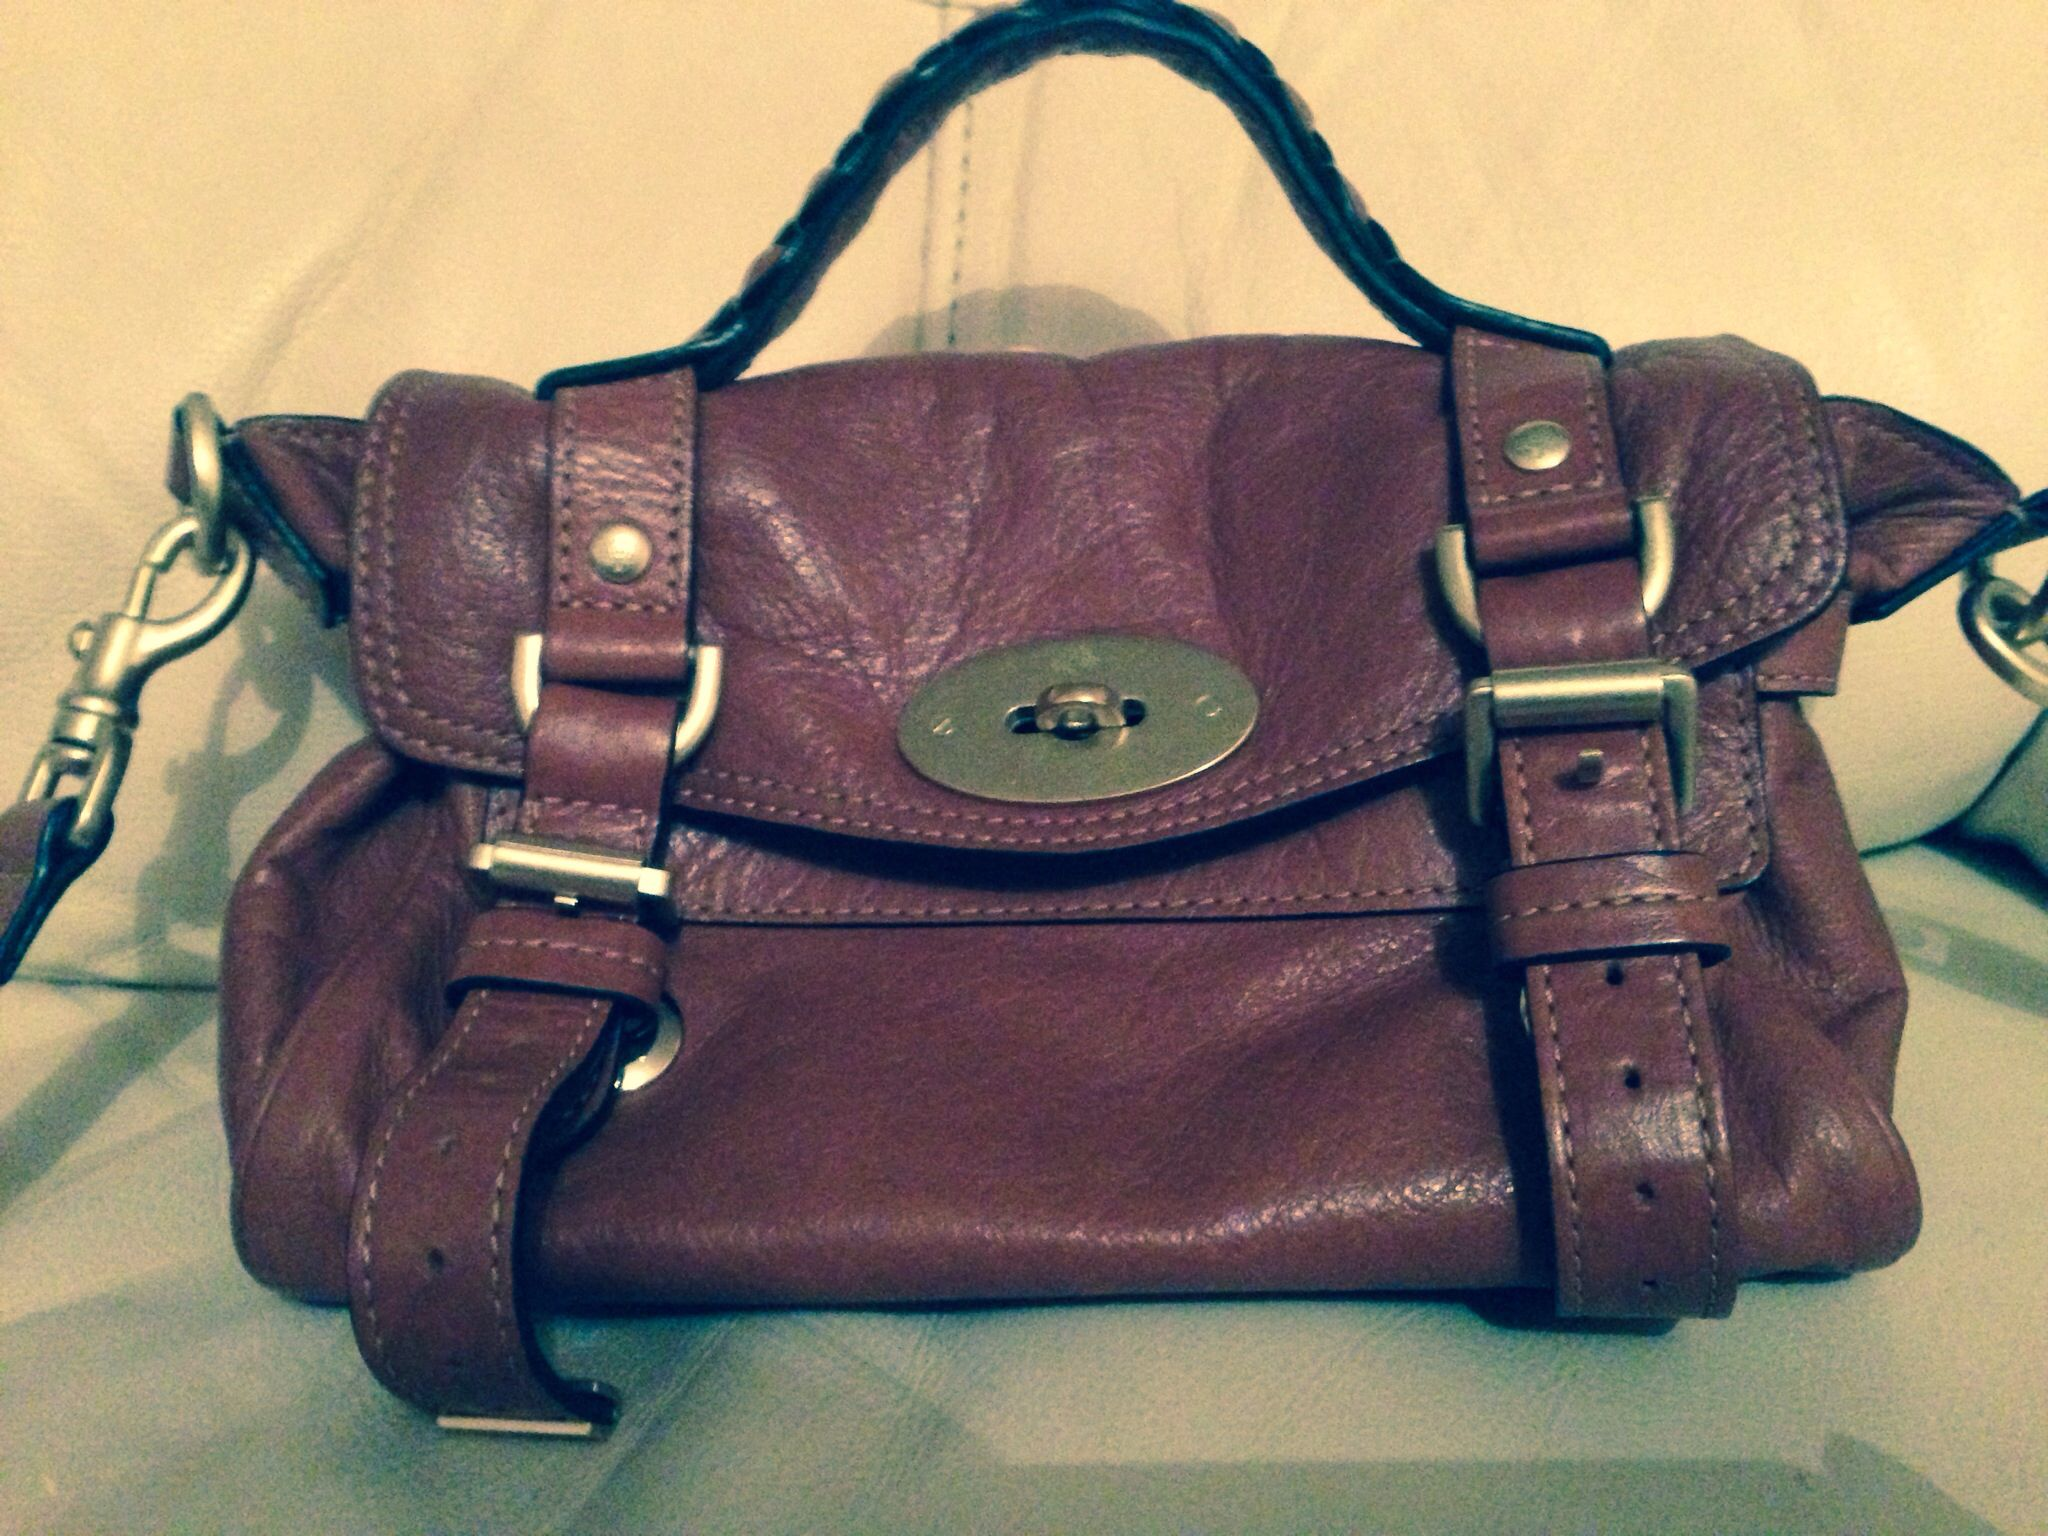 021b0d143529 Mini Mulberry Alexa handbag. Of all the bags I own this is deffo my  favourite